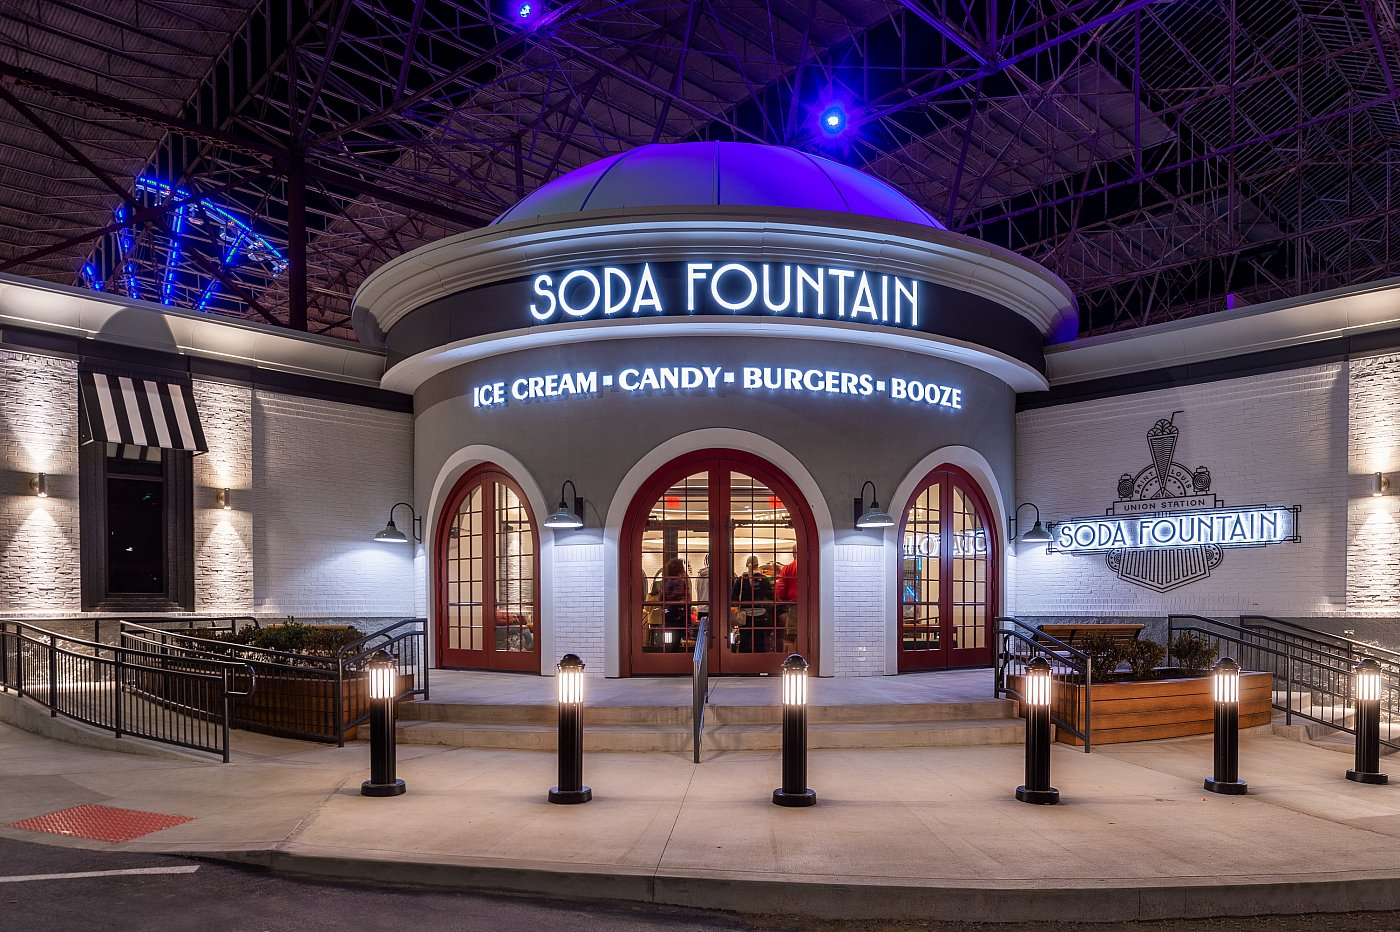 001 Soda Fountain Union Station_Oct 2019_LHM.jpg